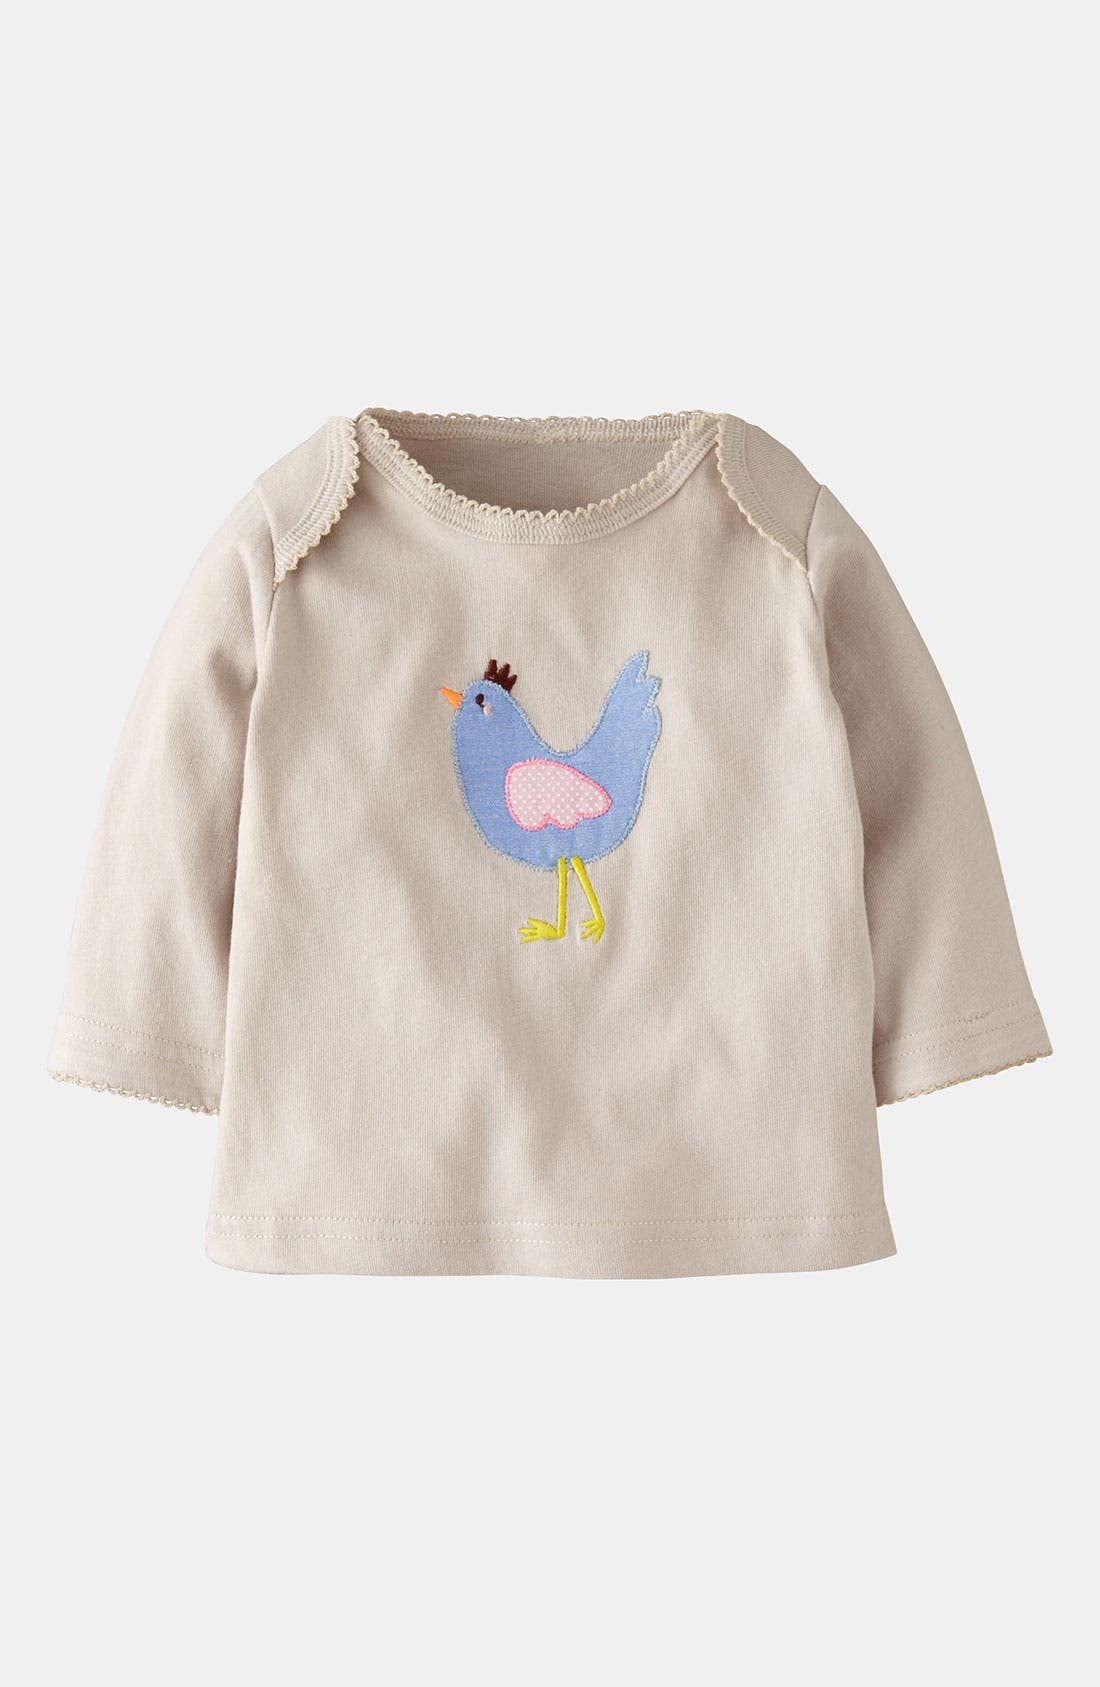 Alternate Image 1 Selected - Mini Boden 'Pretty Appliqué' Tee (Baby)